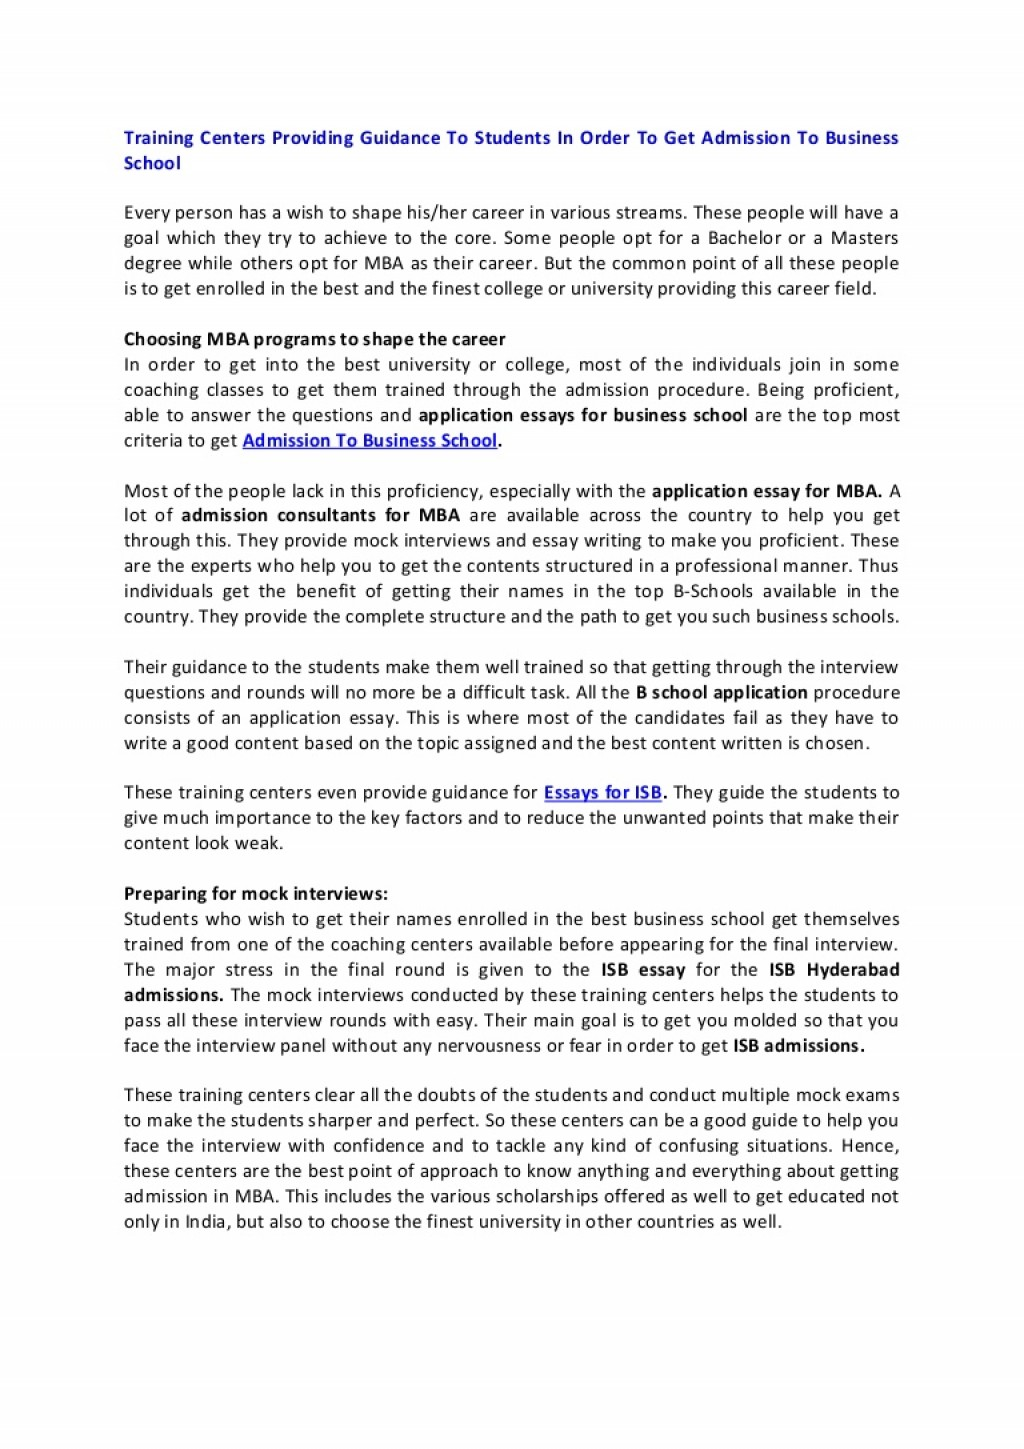 009 Essay Example Columbia Essays Application For Business School Ivyctor Article1 Phpapp01 Thumbn Stanford Harvard Sample Format Best Examples Shocking That Worked Mba Tips Large